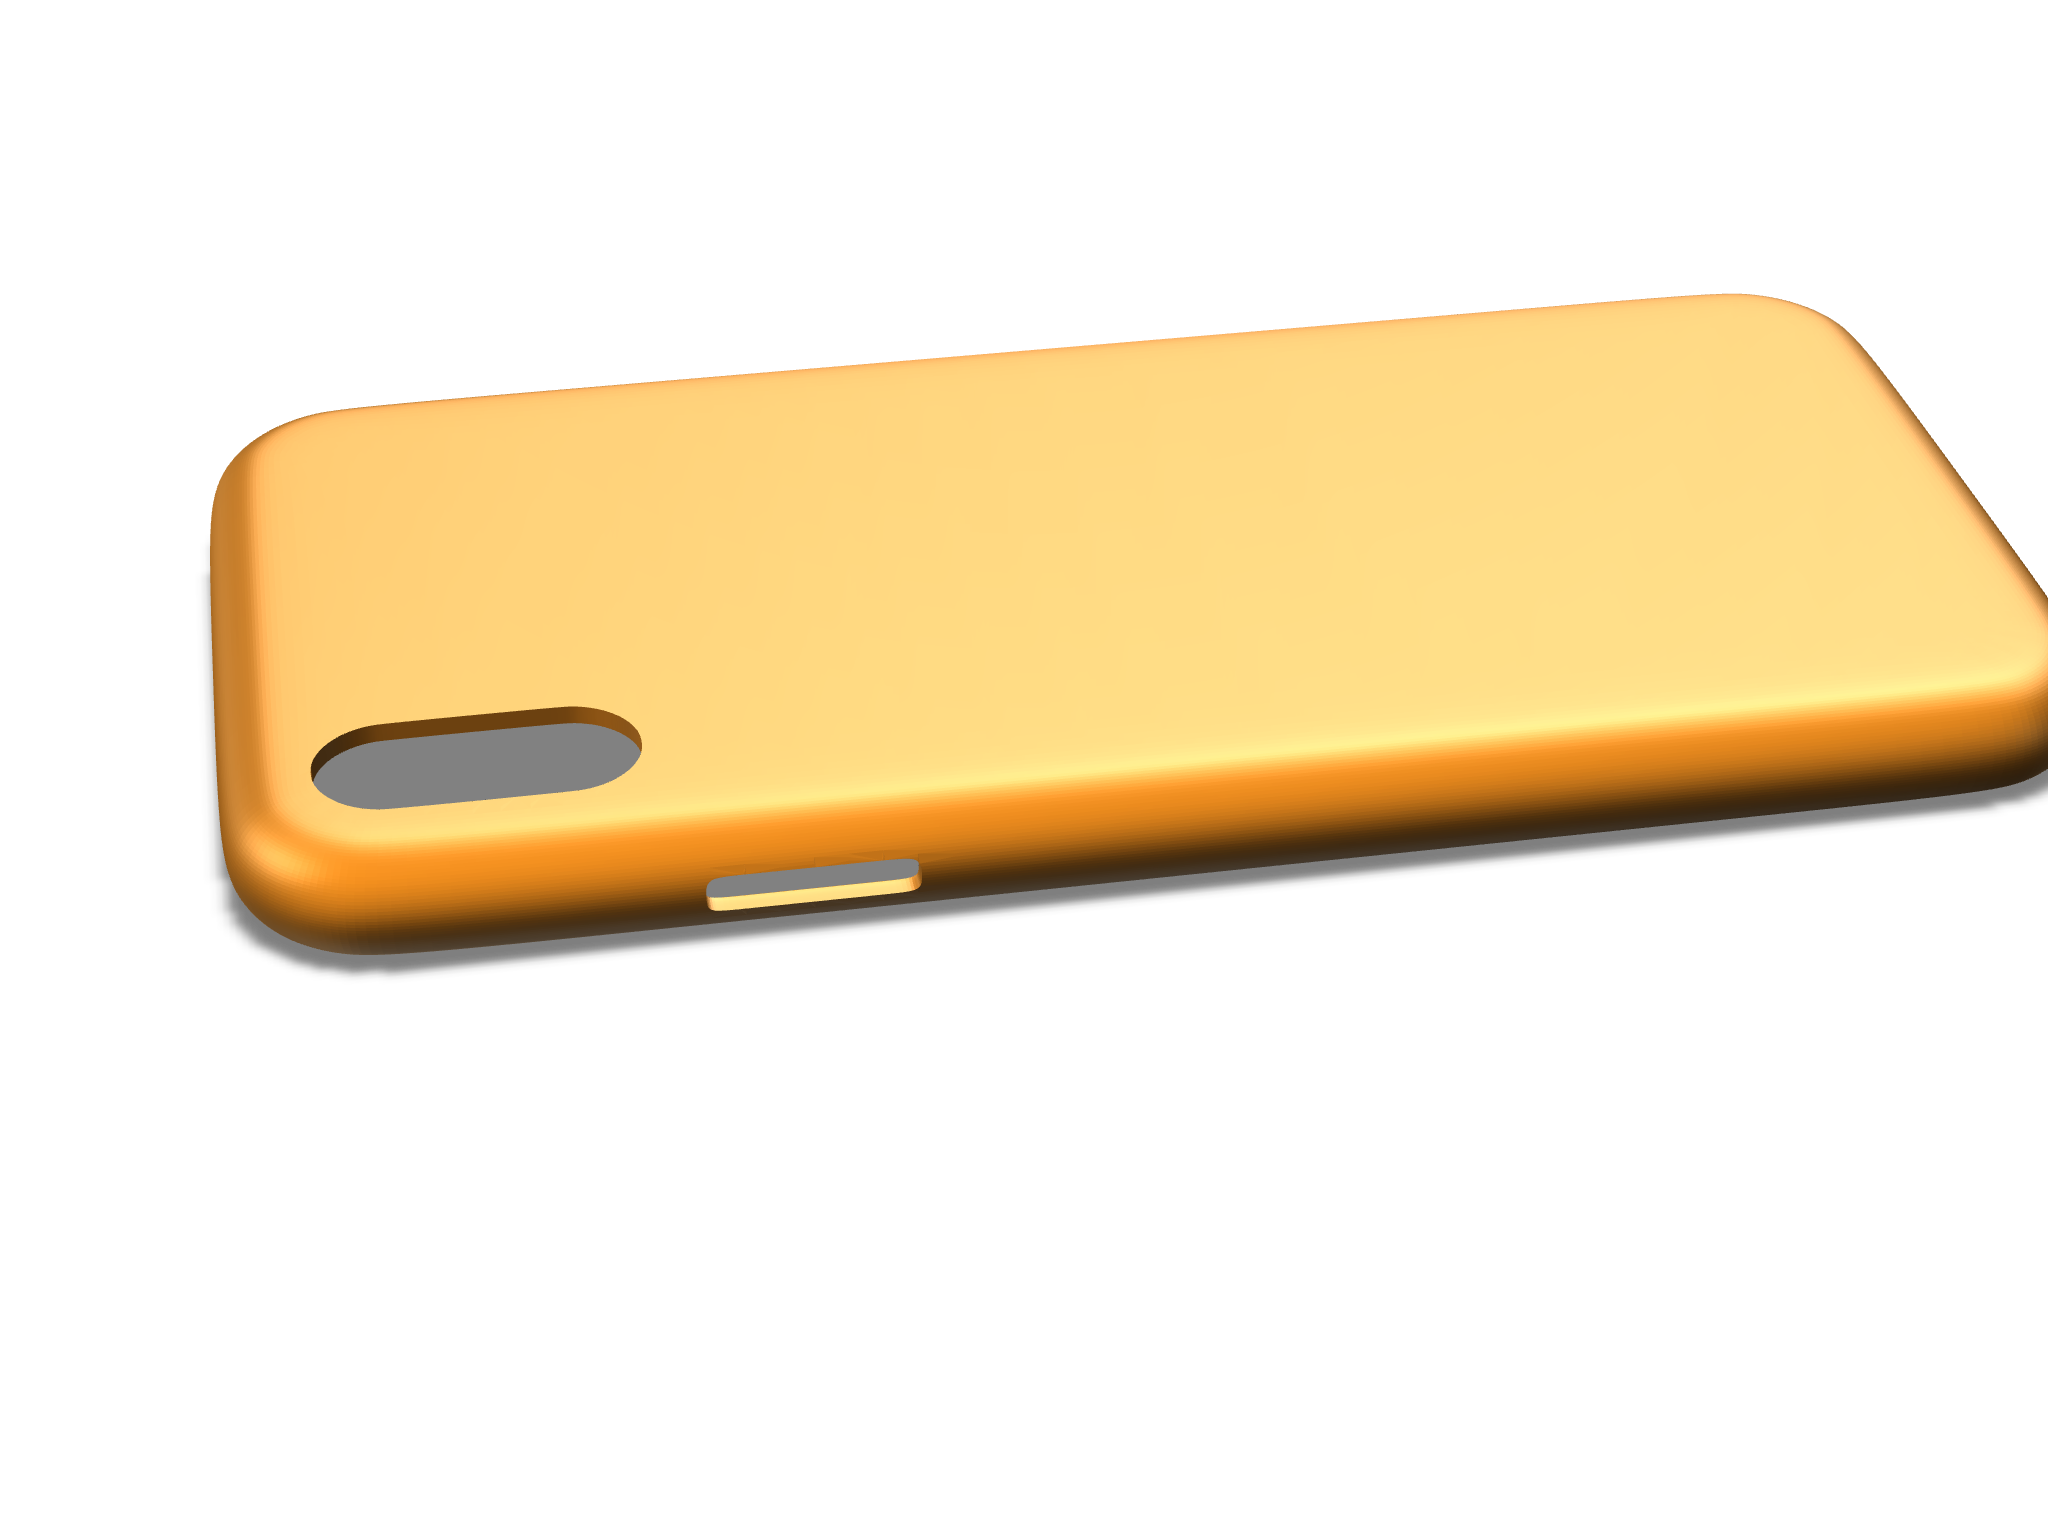 iPhone X case  Simple - 3D design by safogarty19 on Jan 16, 2018